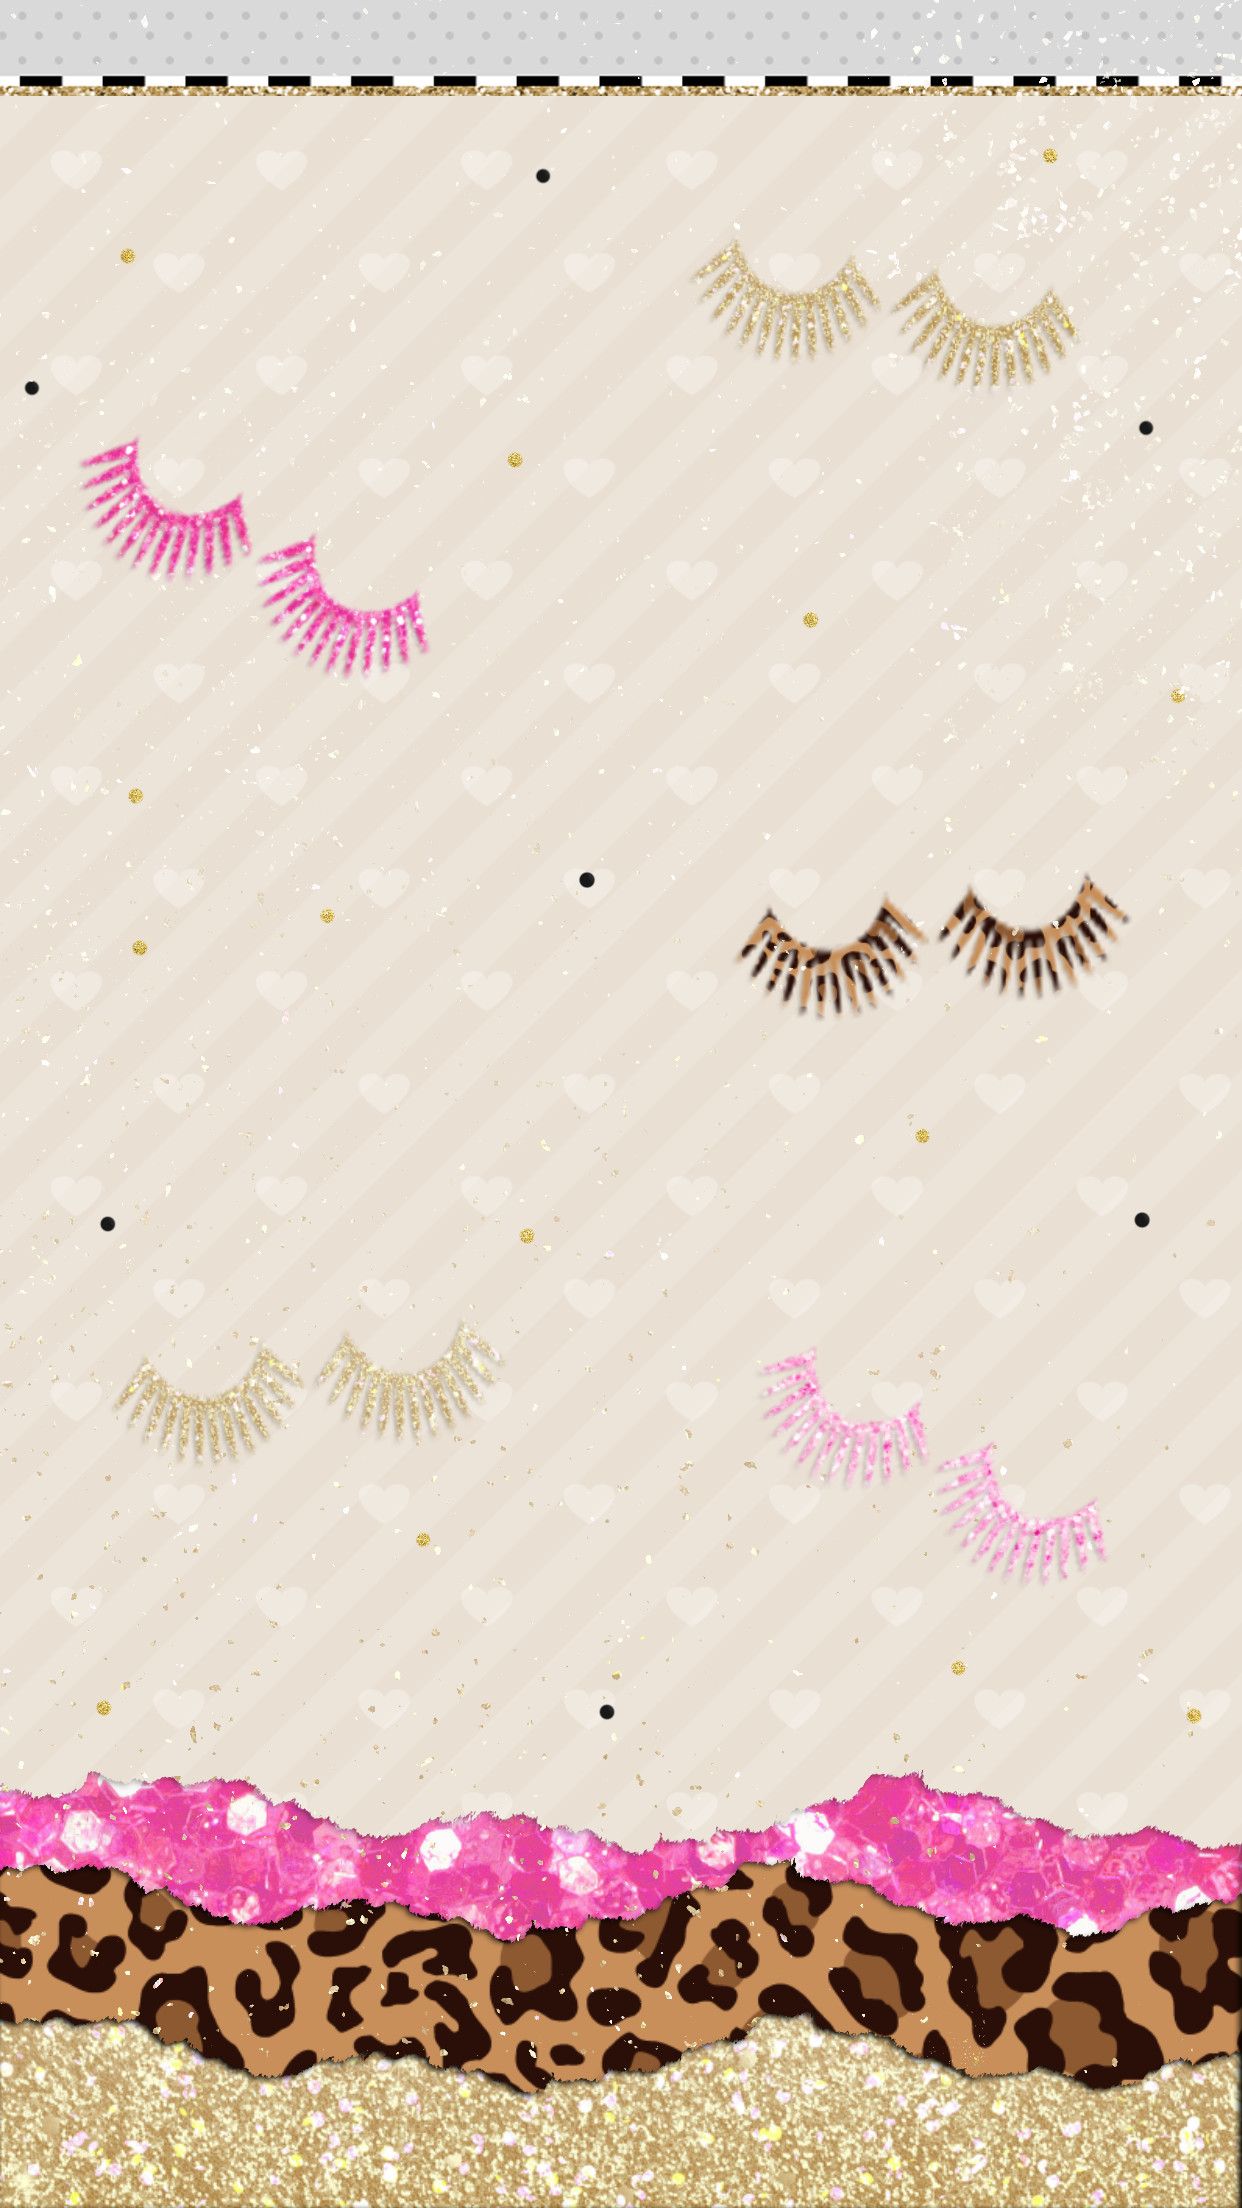 Pink Wallpaper, Wallpaper Backgrounds, Cute Wallpapers, Phone Wallpapers,  Iphone 3, Holy Chic, Planner Stickers, Hello Kitty, Glitter